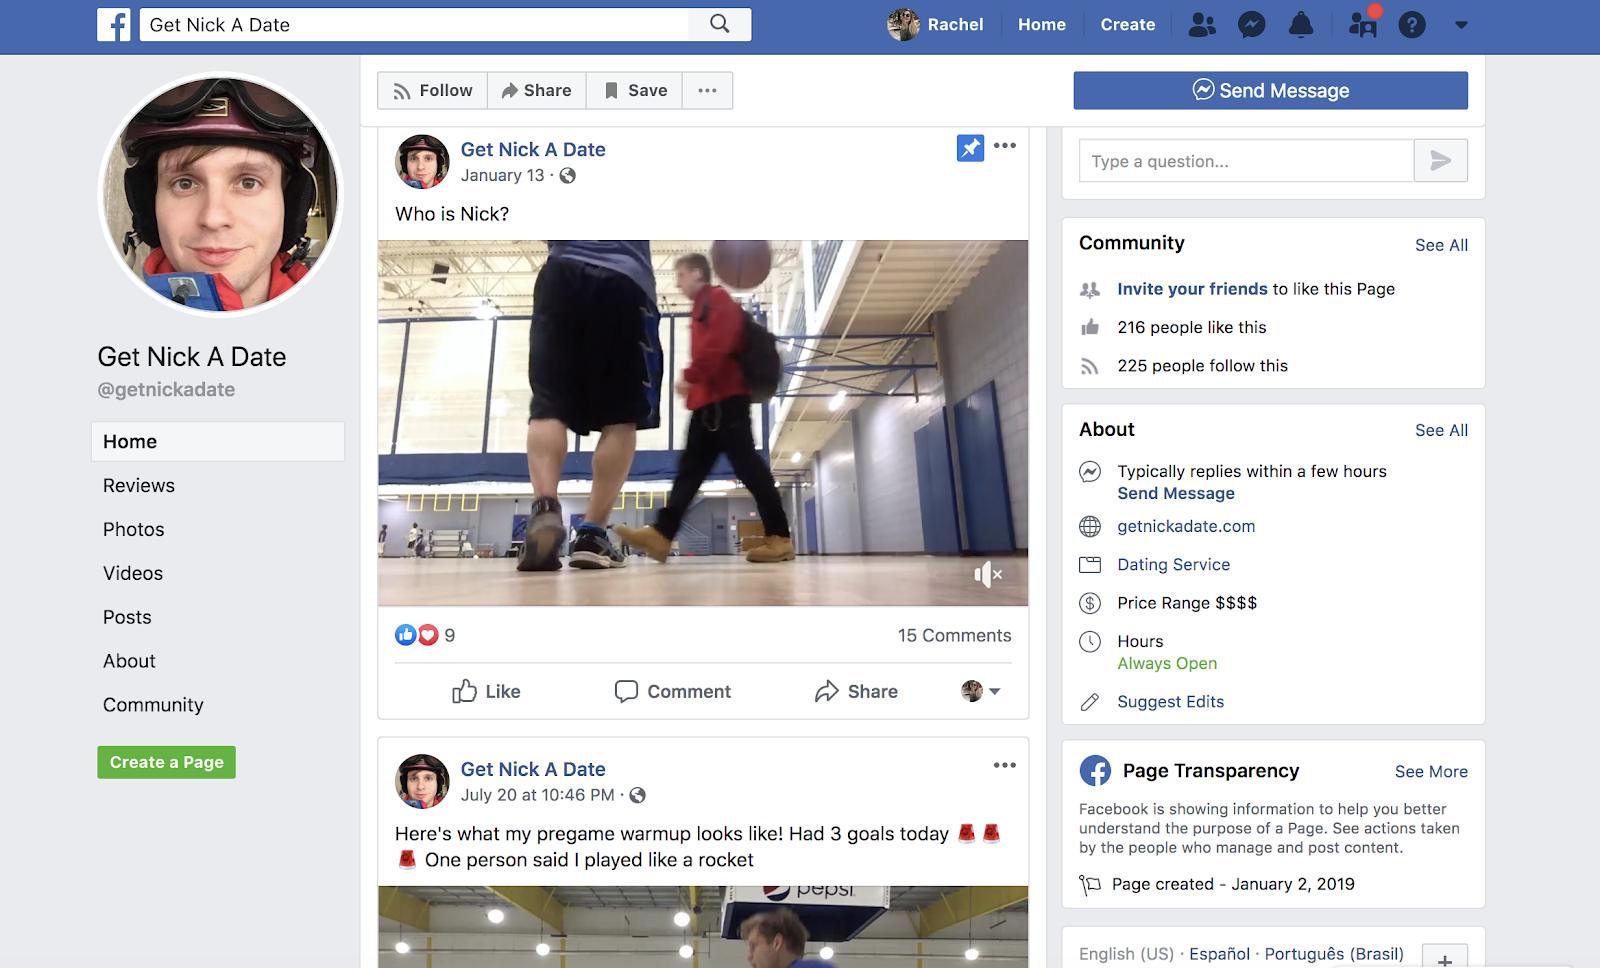 This Man is Using Facebook Ads to Find Himself a Date